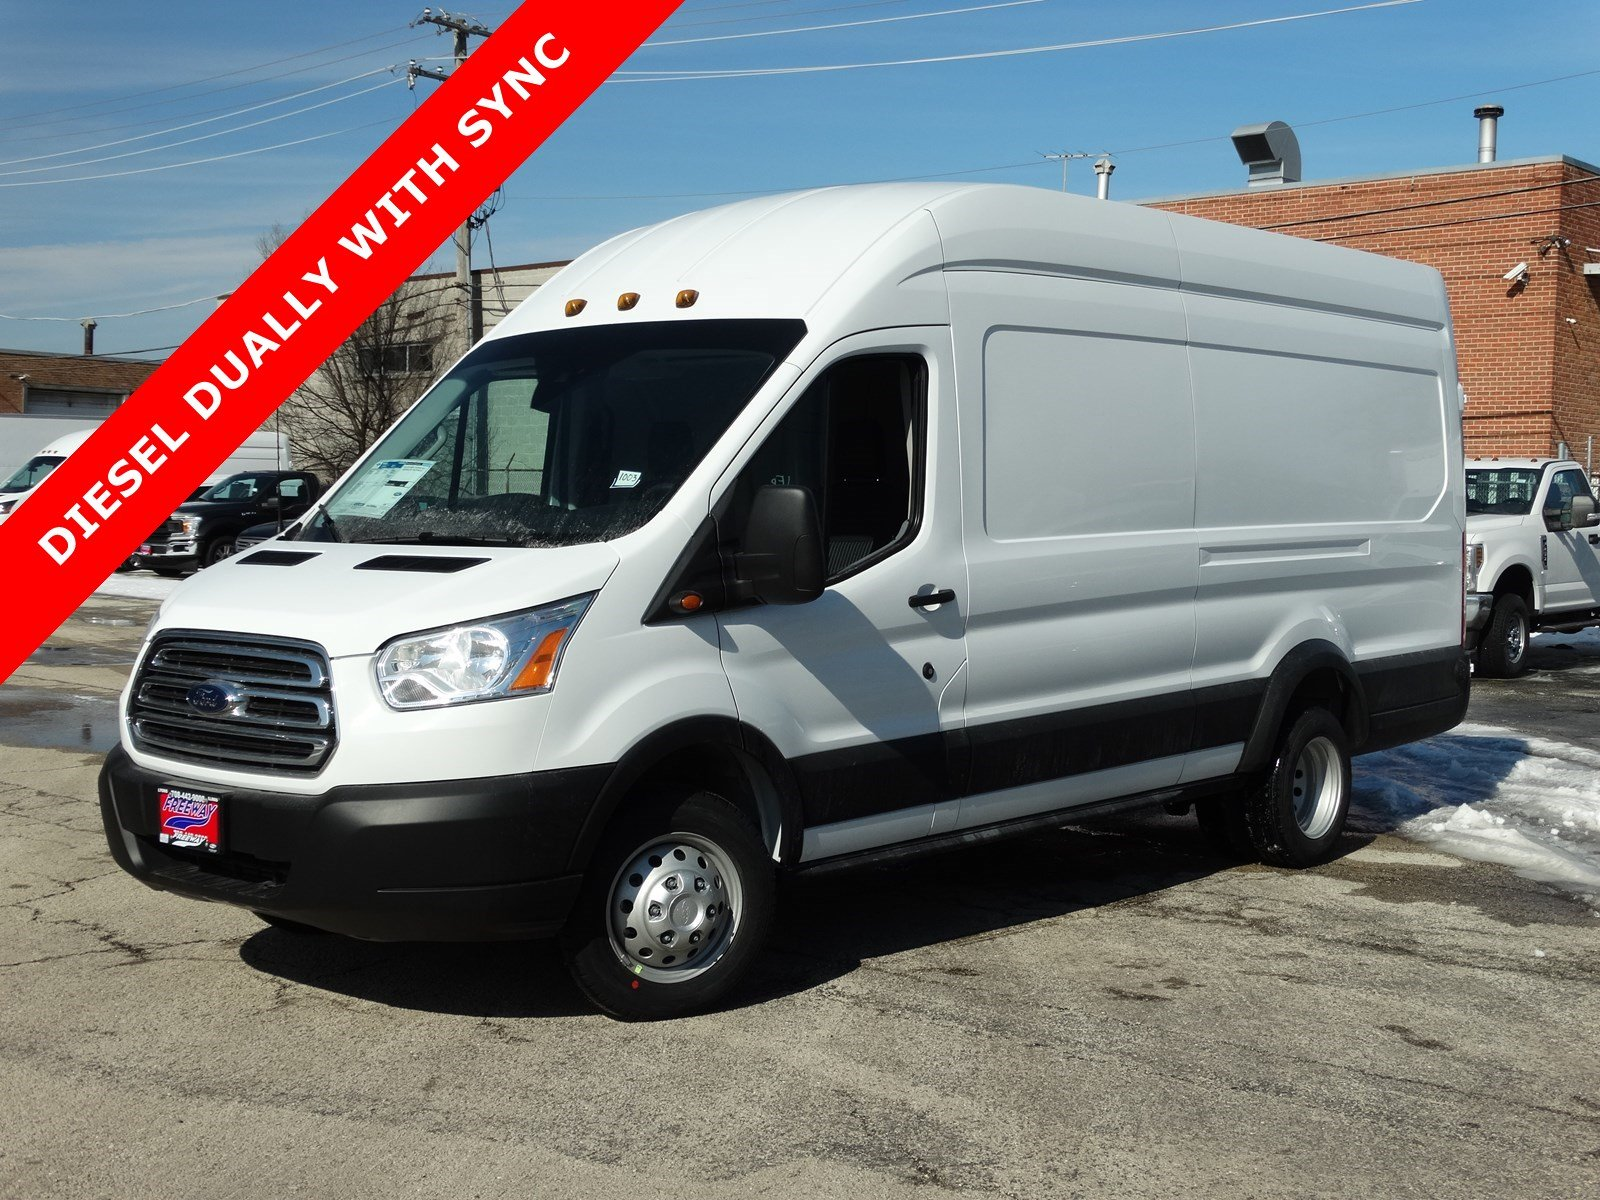 Ford Transit Van >> New 2019 Ford Transit Van Van High Roof Hd Ext Cargo Van For Sale Lyons Il Vin 1ftws4xv2kka59068